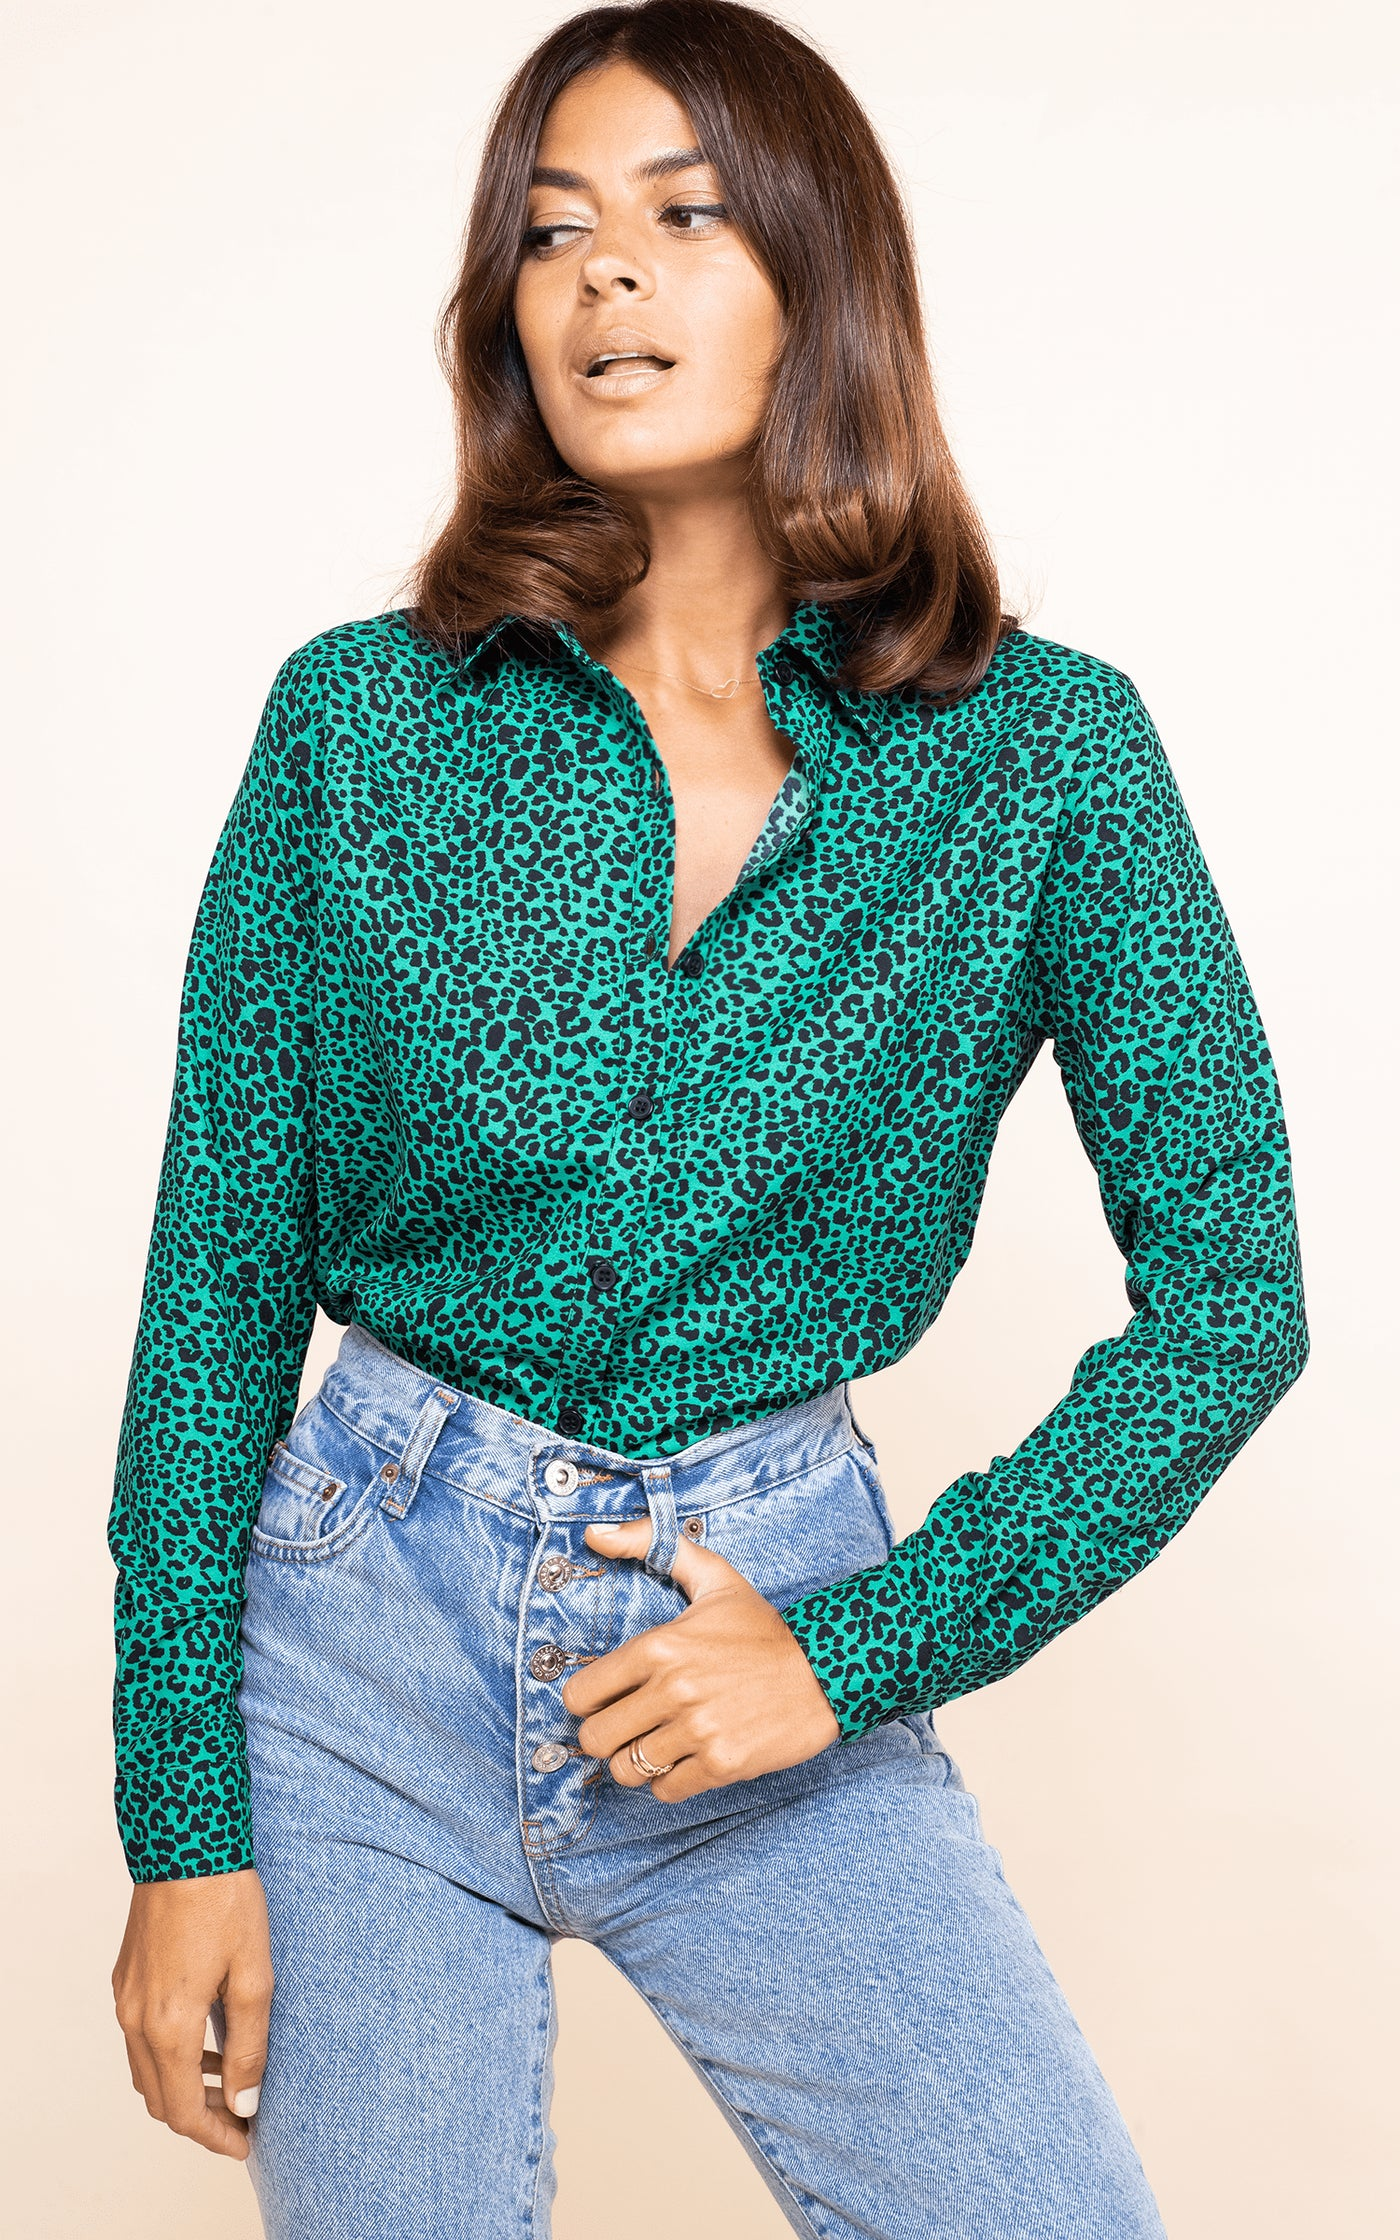 Dancing Leopard model looks sideways wearing San Diego Shirt in green leopard print with blue jeans